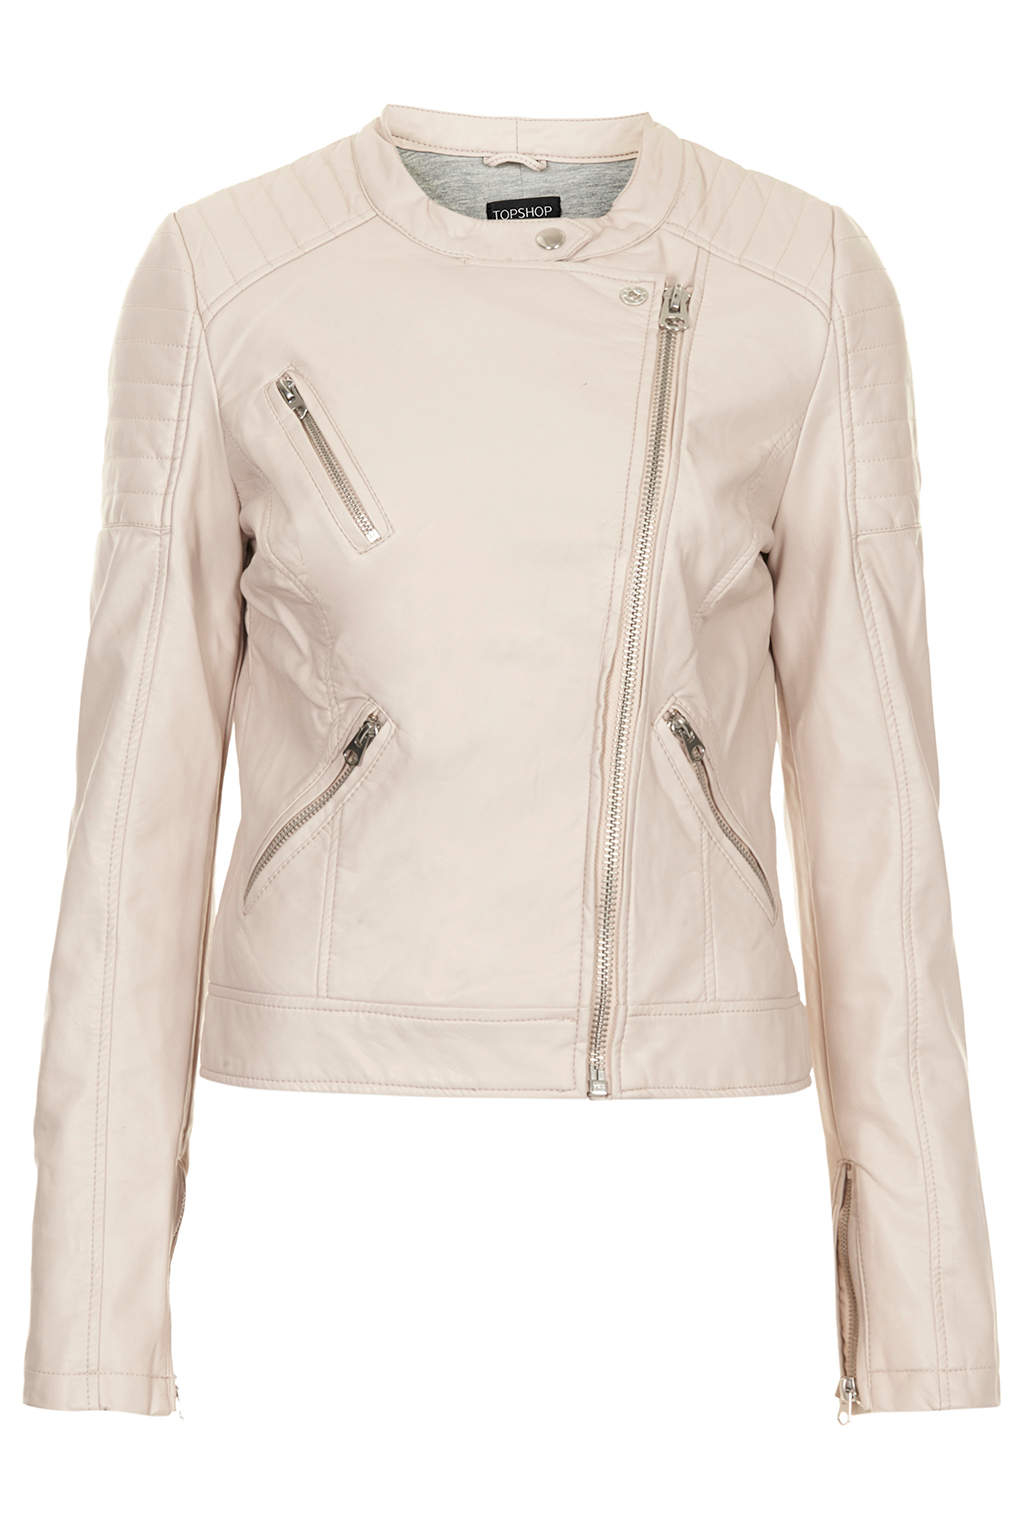 cheap sale the latest newest collection TOPSHOP Collarless Faux Leather Biker Jacket in Pale Pink ...